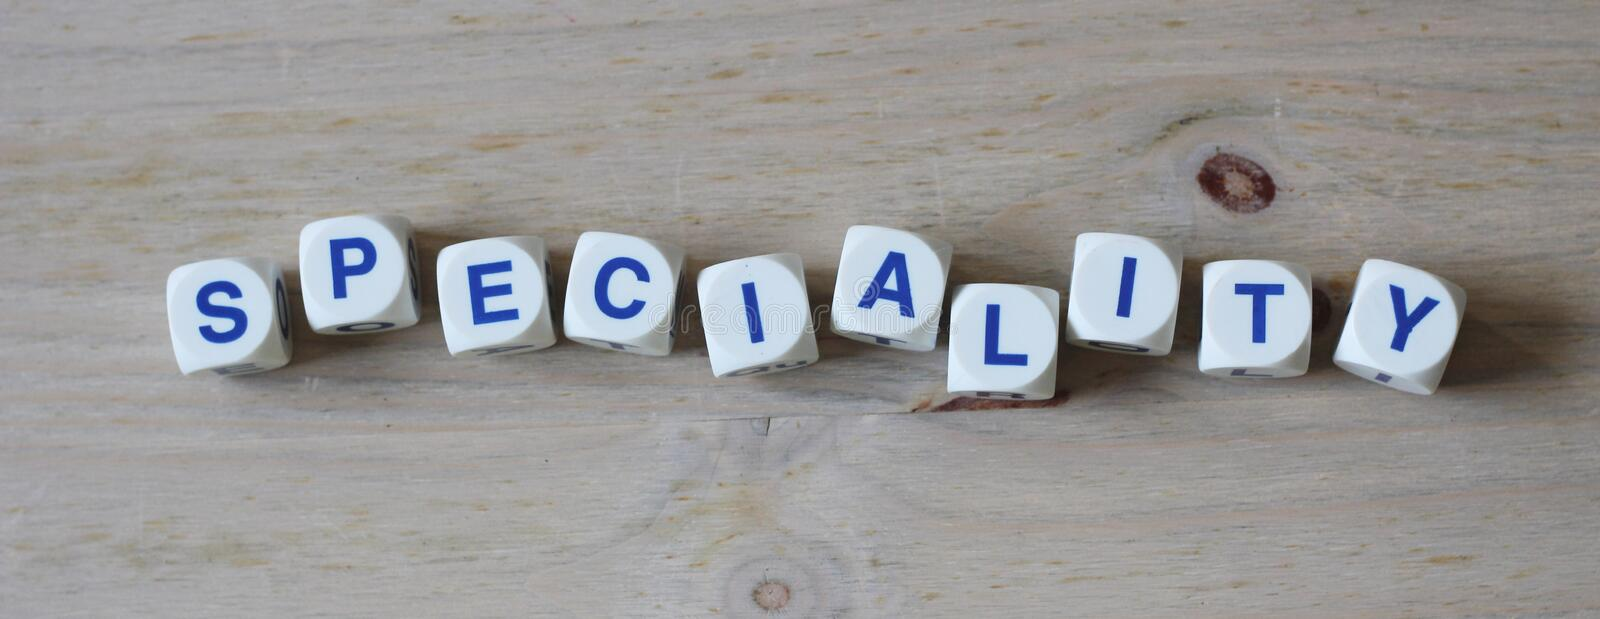 Speciality. Letters cube wordings on wood table stock photo